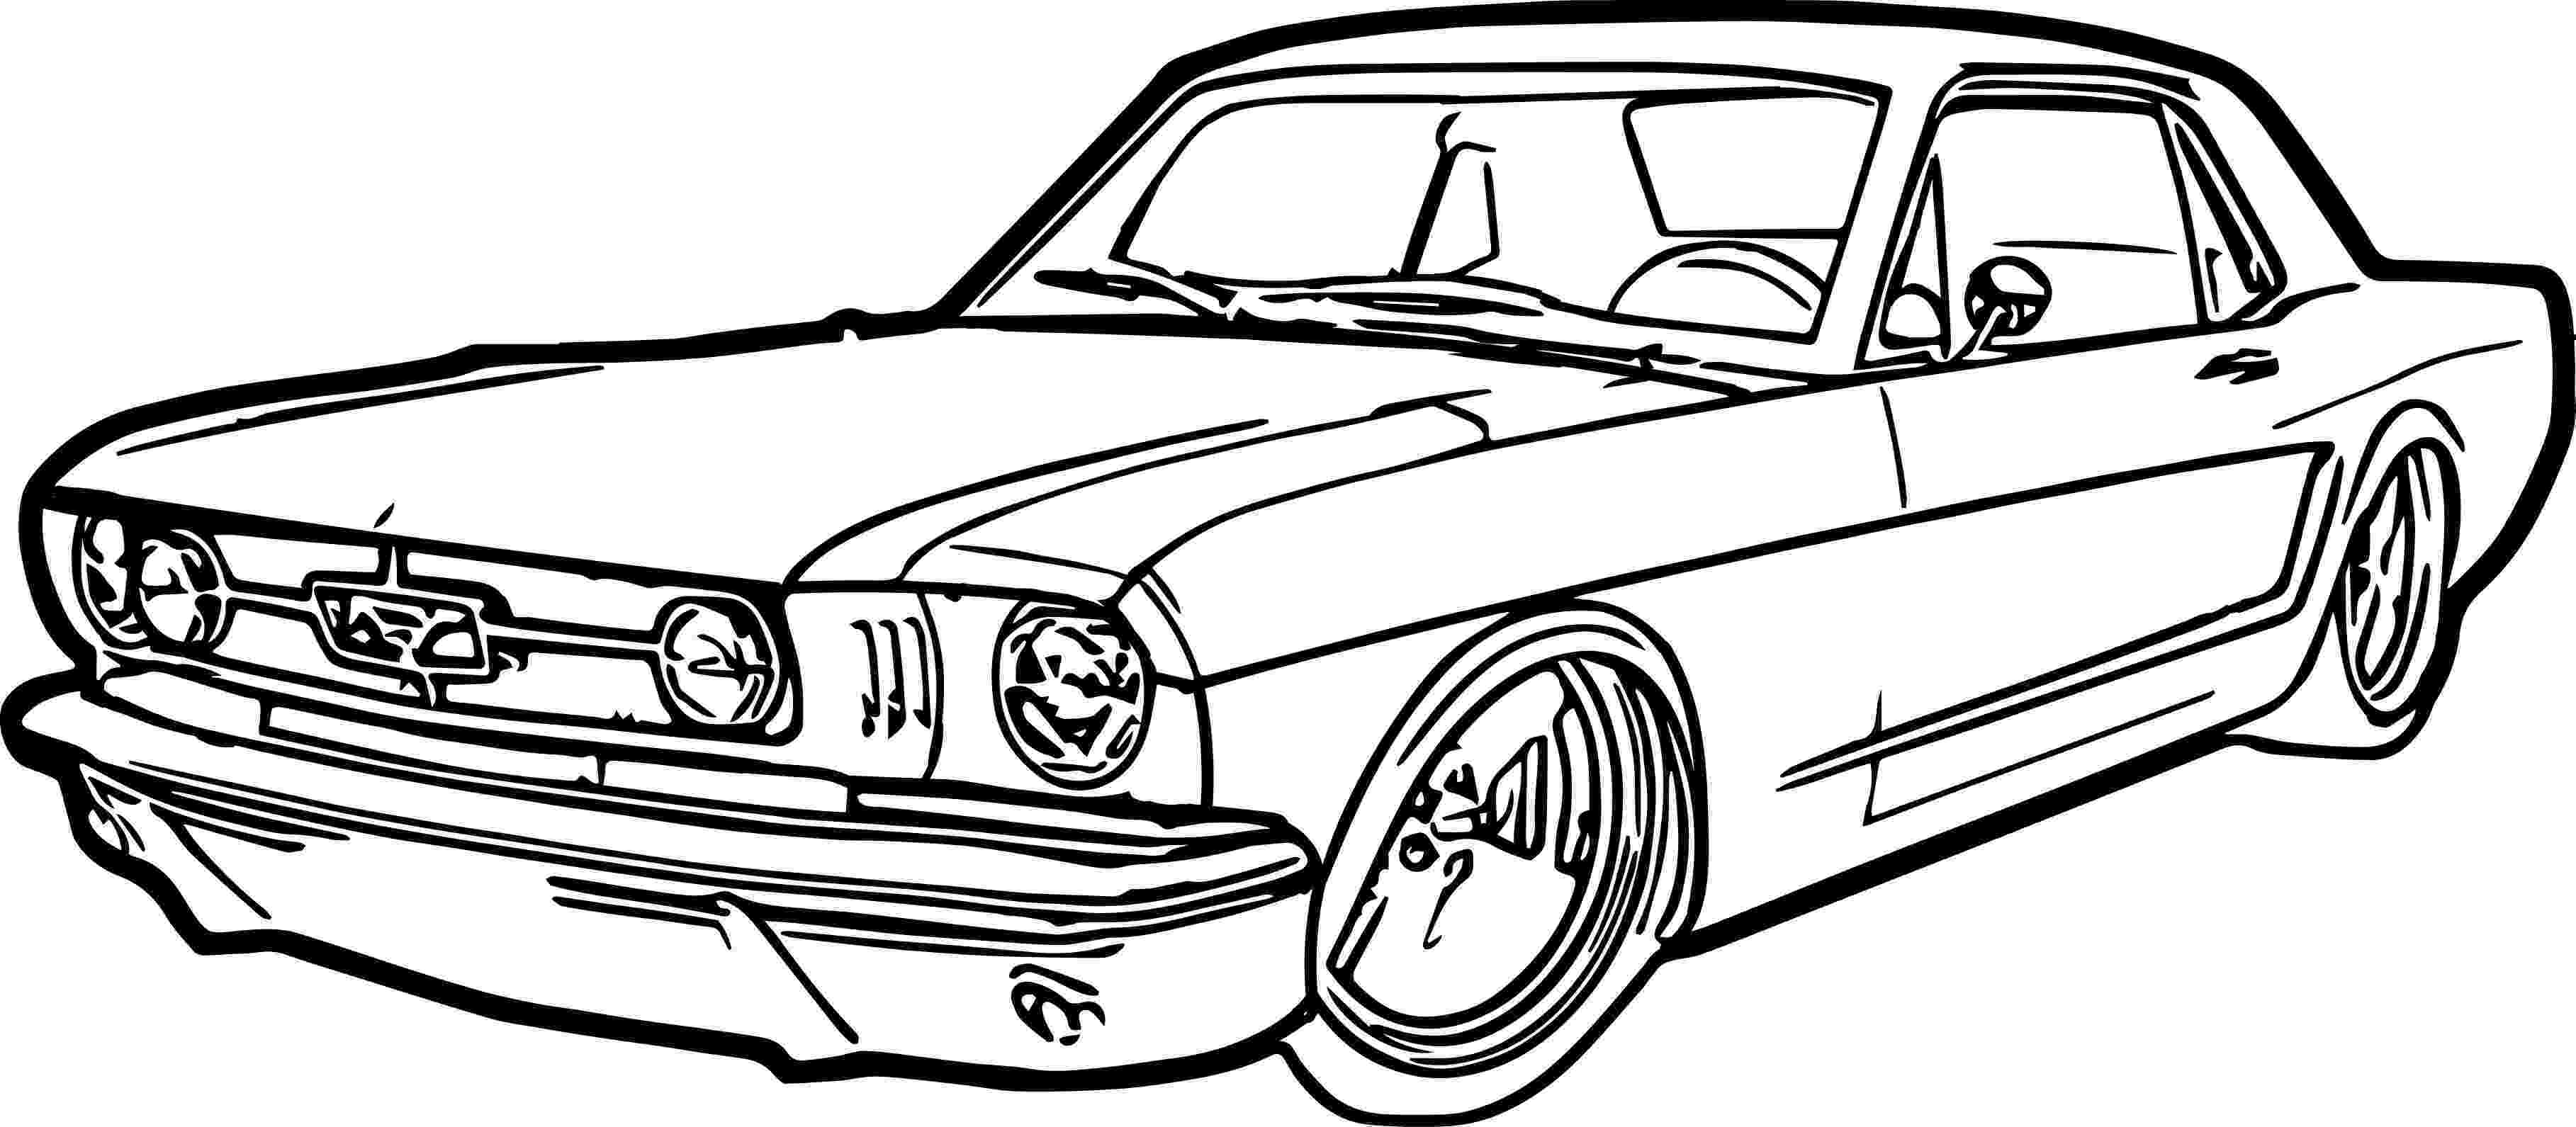 printable coloring pages sports cars coloring pages sports cars to print free coloring sheets coloring cars printable sports pages